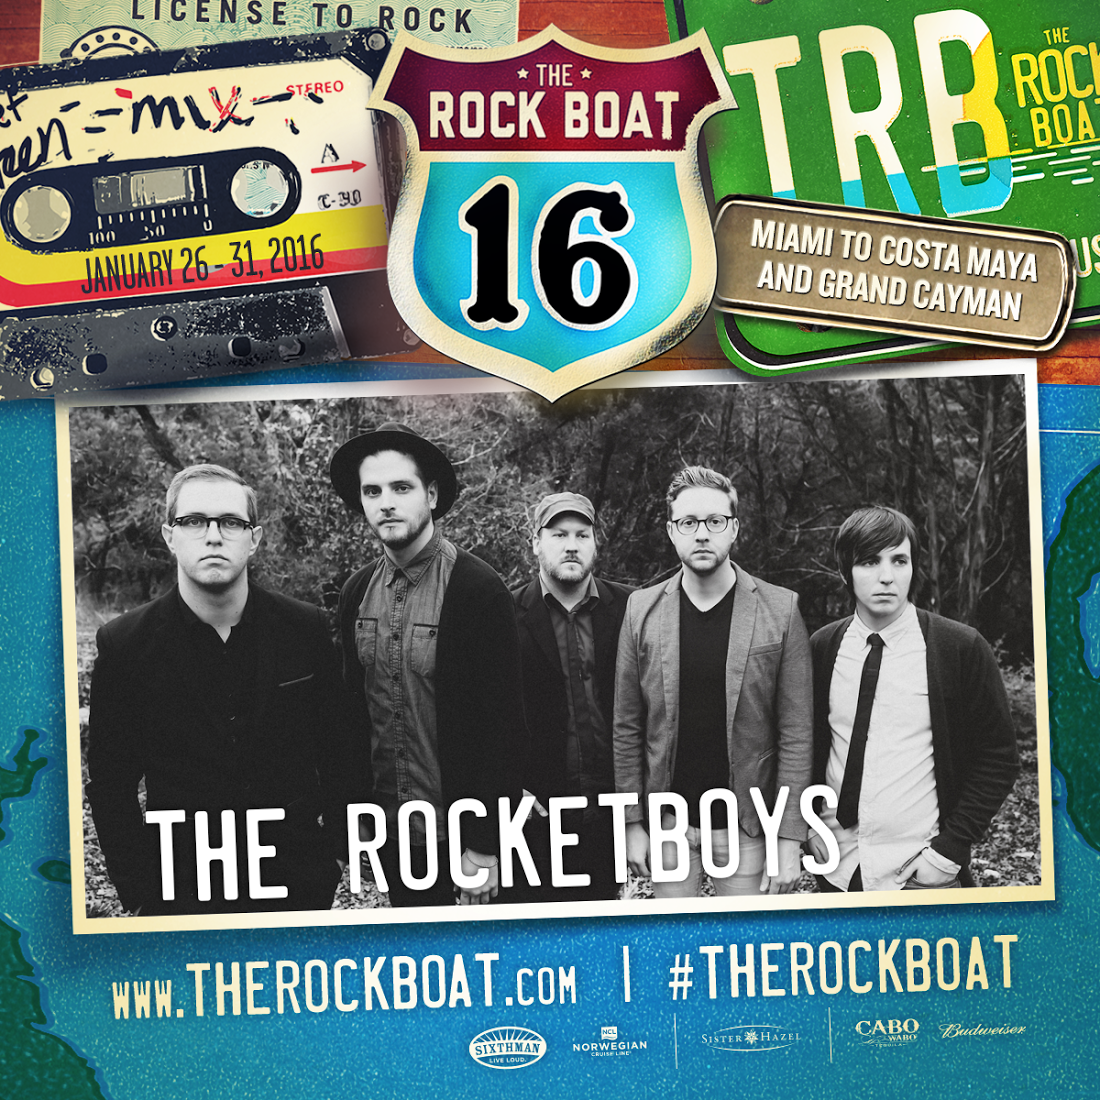 The Rocketboys Rock Boat